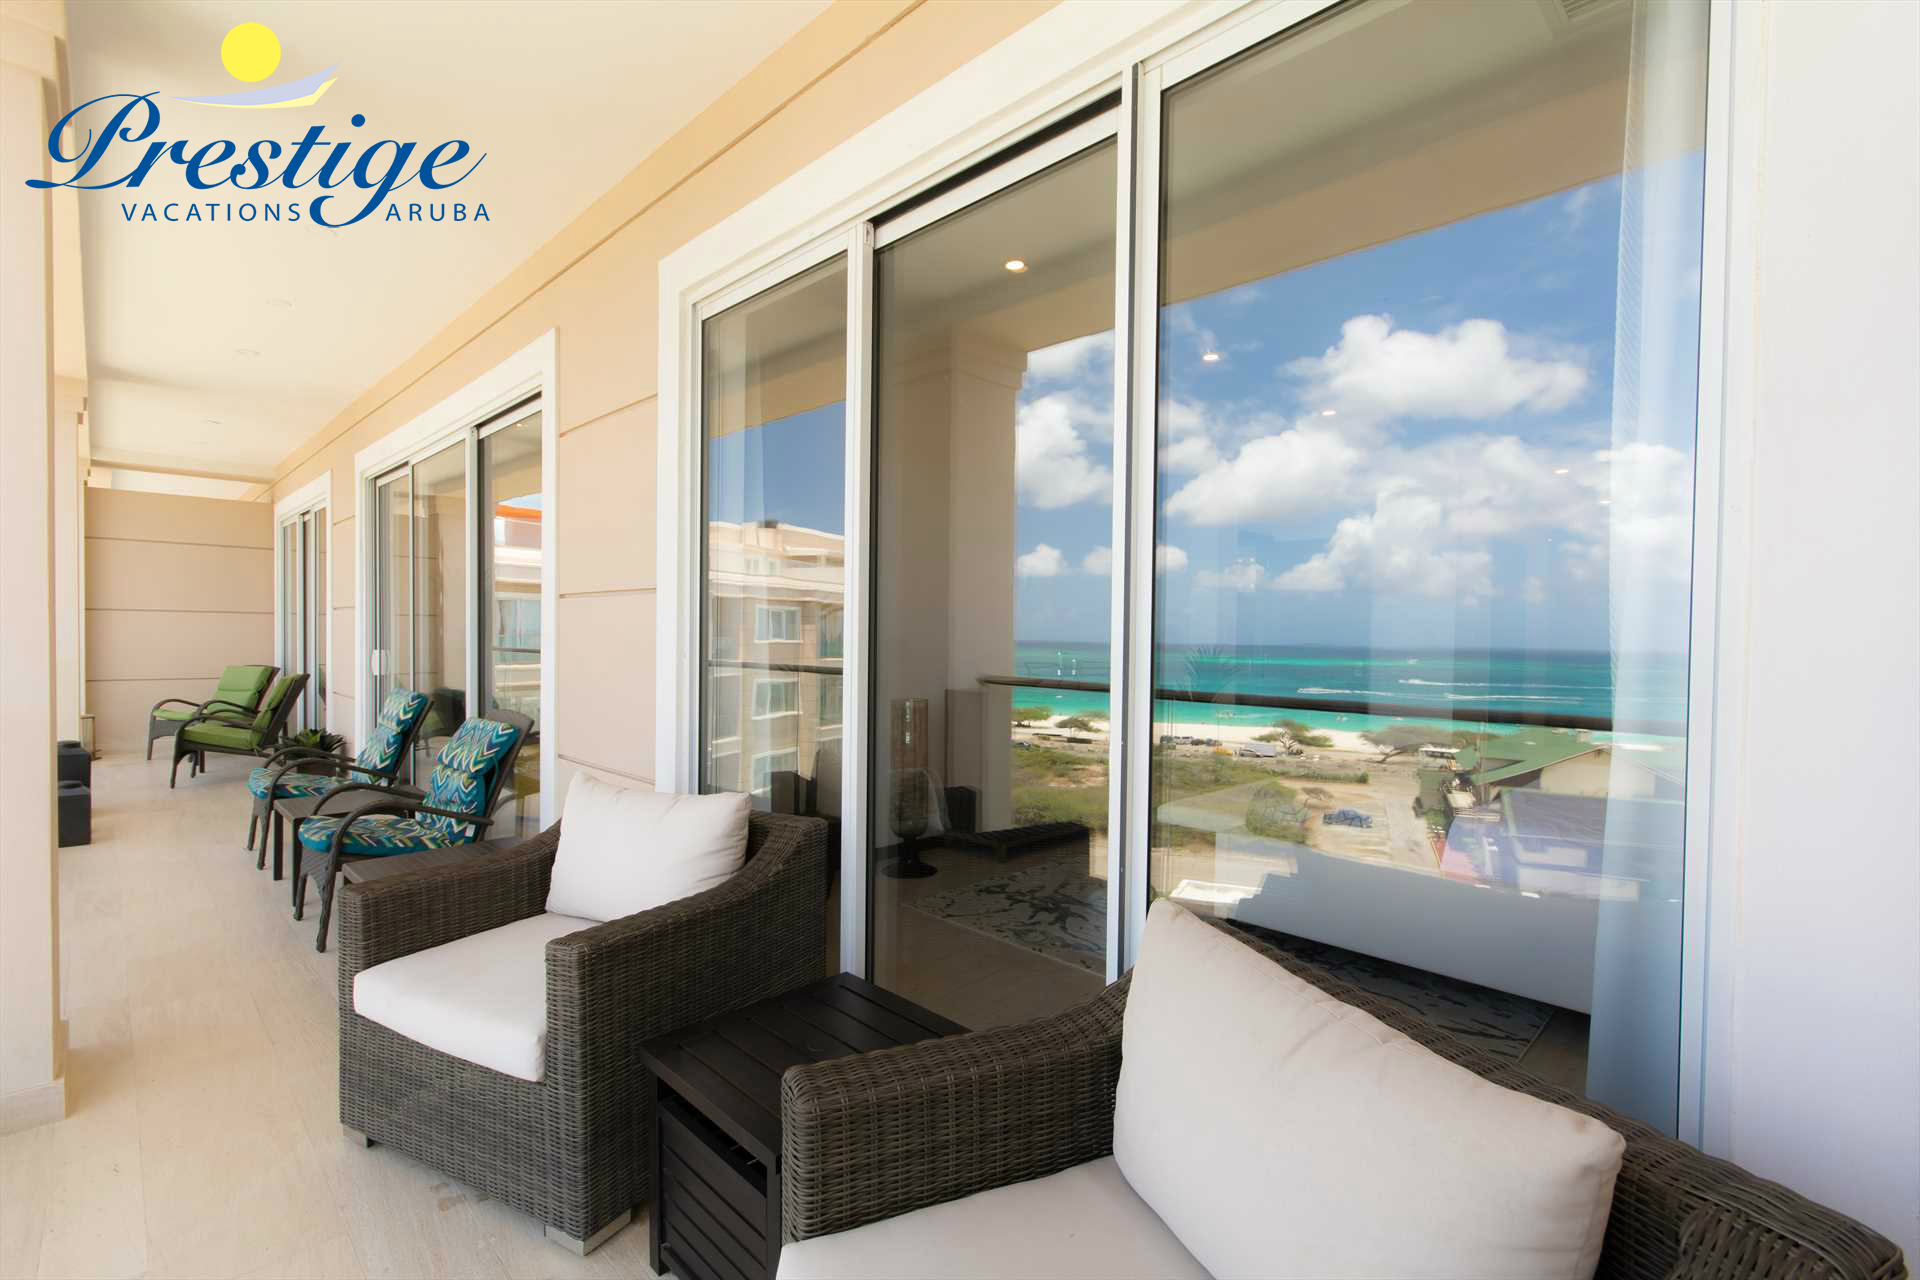 The balcony with several chairs to enjoy the picturesque beach view